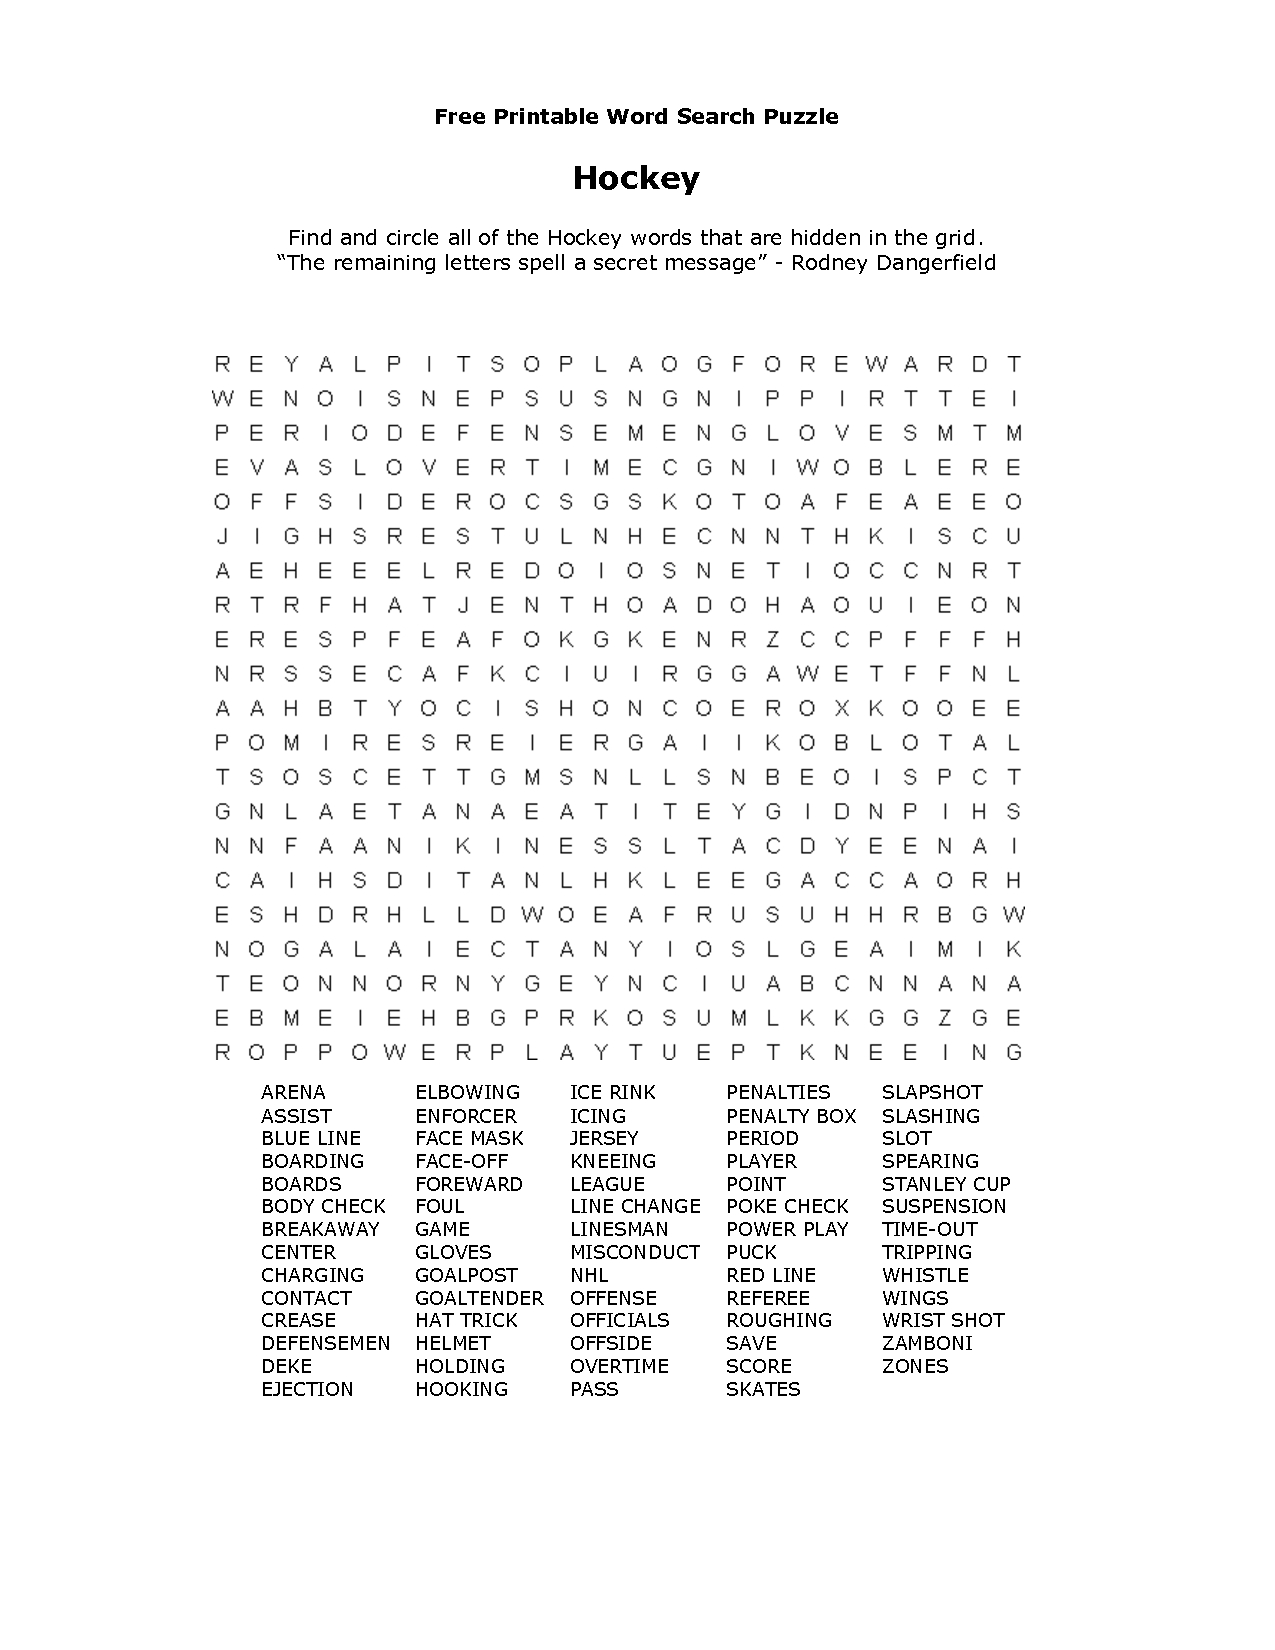 Free Printable Word Searches | طلال | Free Printable Word Searches - Printable Hockey Crossword